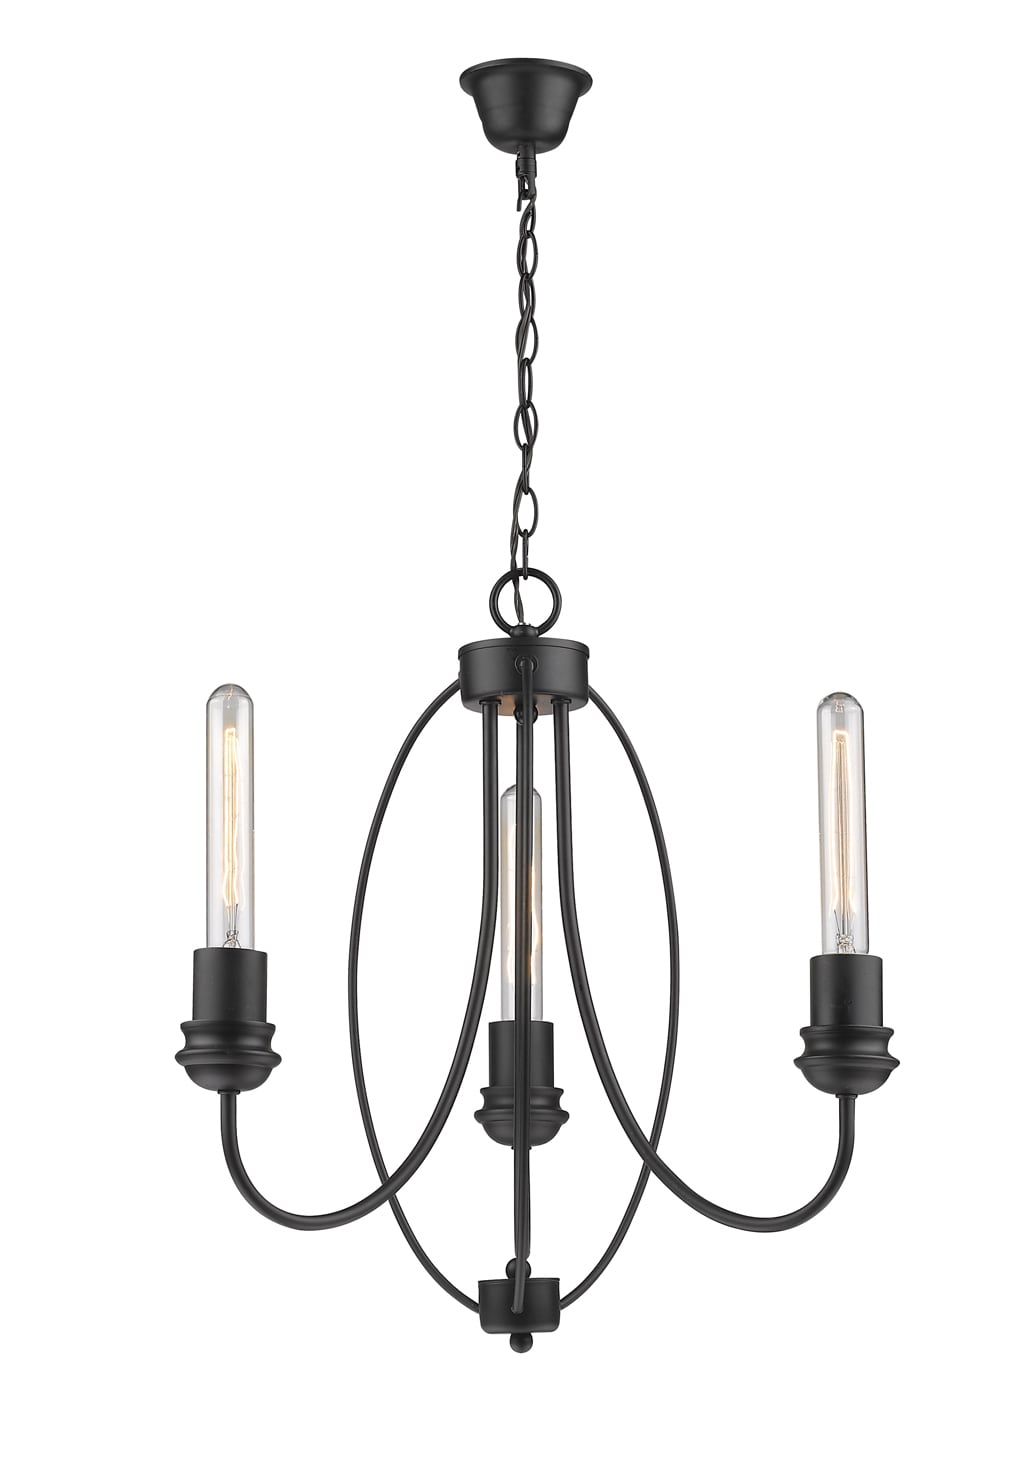 The three-point Canaria 3 wire pendant lamp